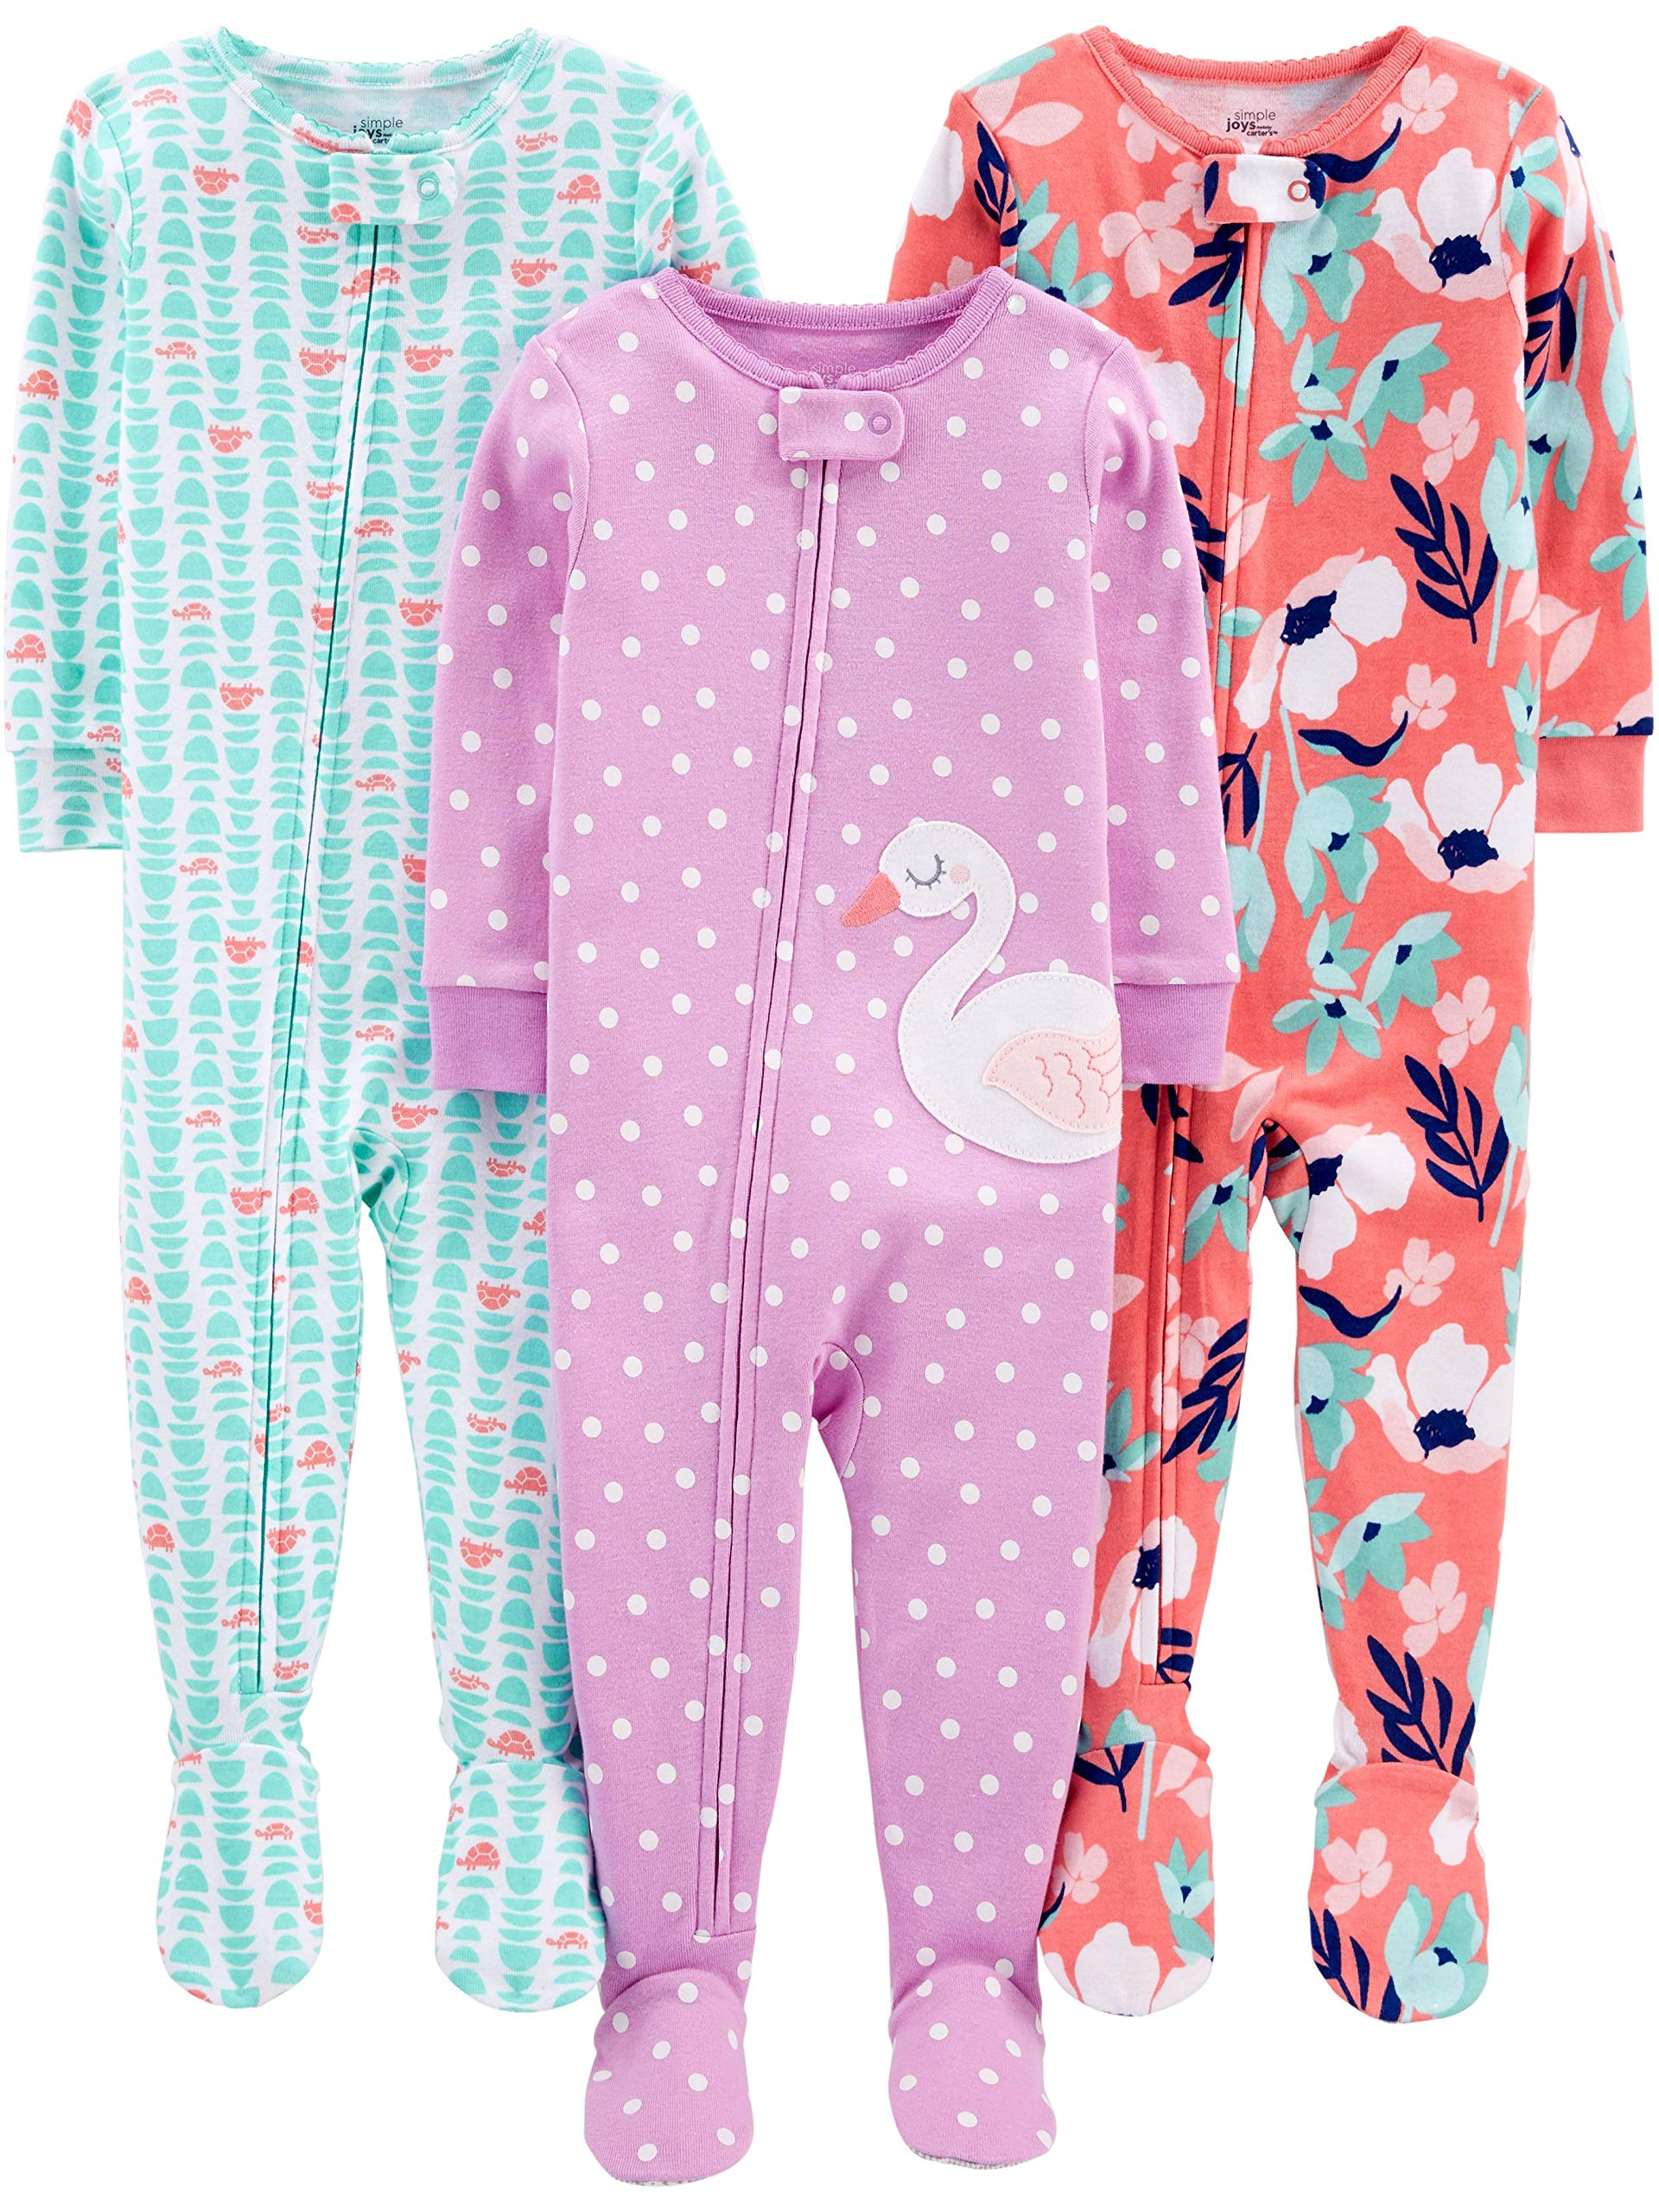 c4bdc582ef Simple Joys by Carter s Baby and Toddler Girls  3-Pack Snug Fit Footed  Cotton